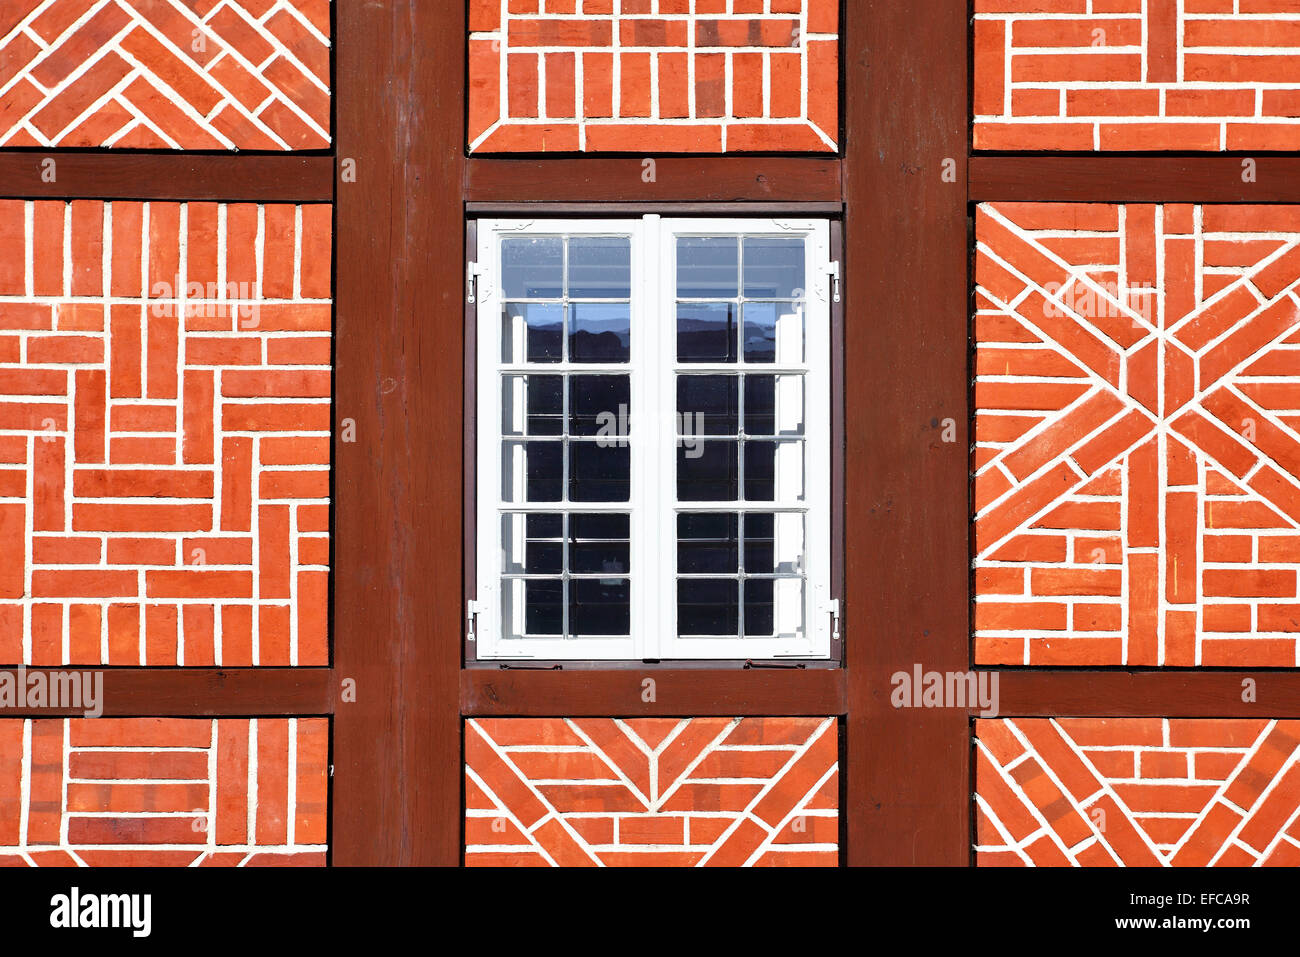 Window of old timber framing house, Germany - Stock Image